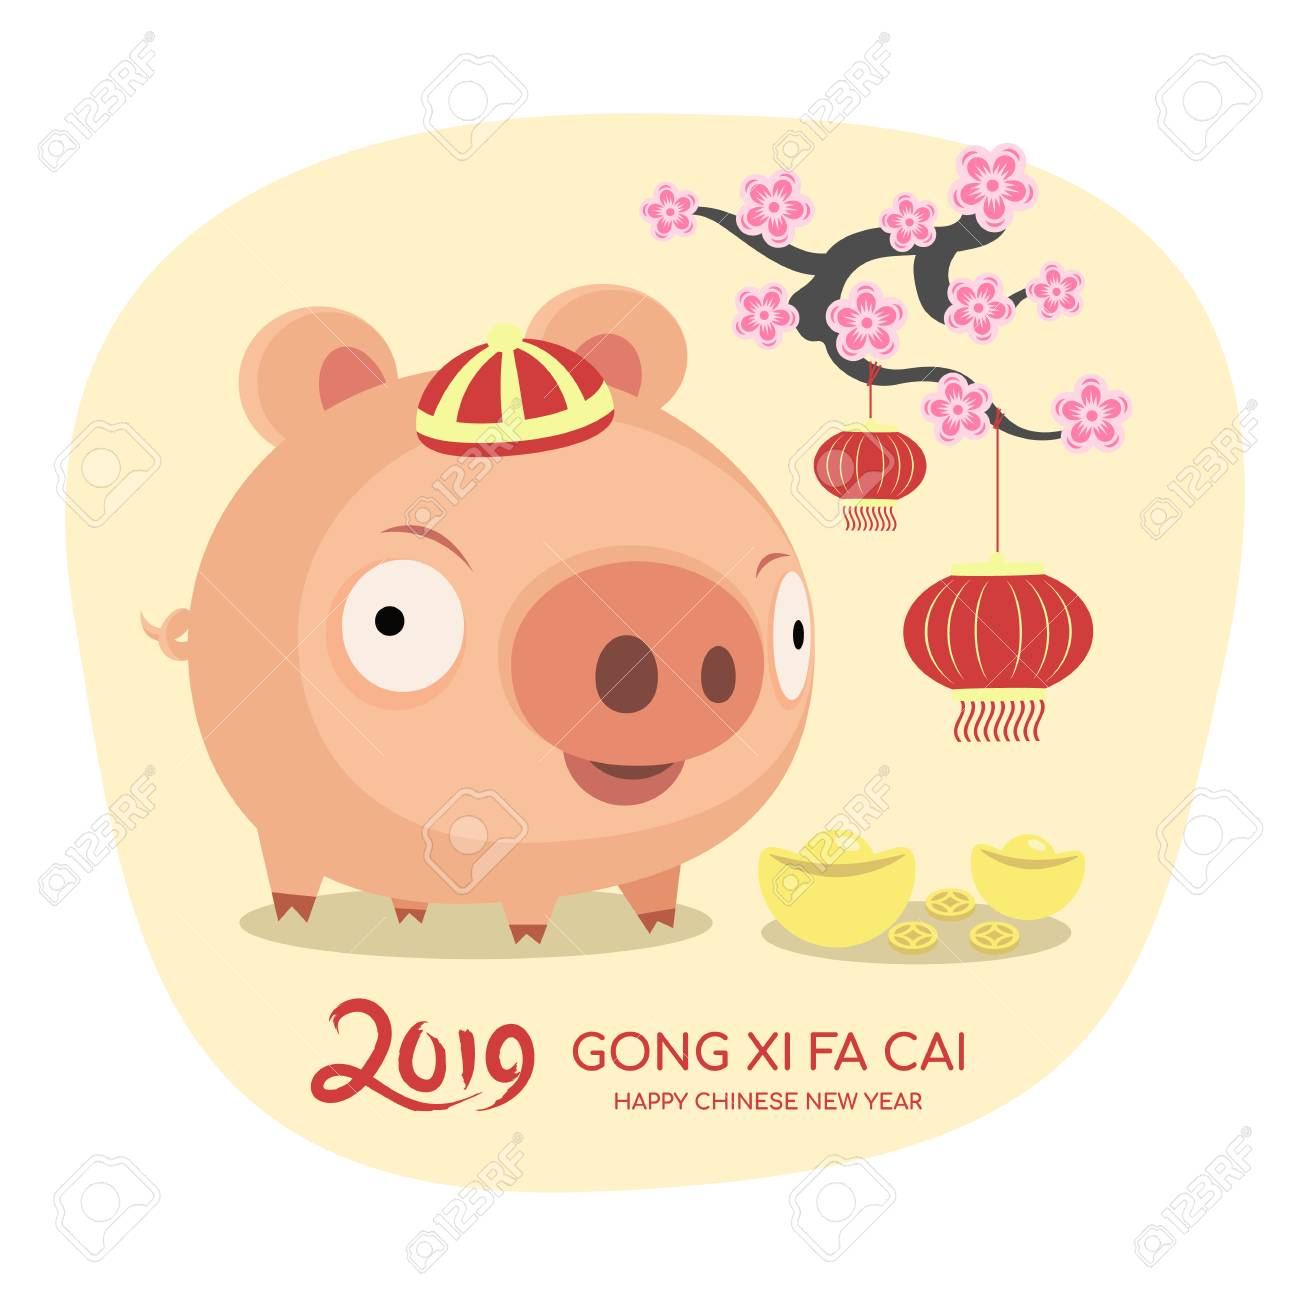 Happy chinese new year 2019 banner with cute character pig...